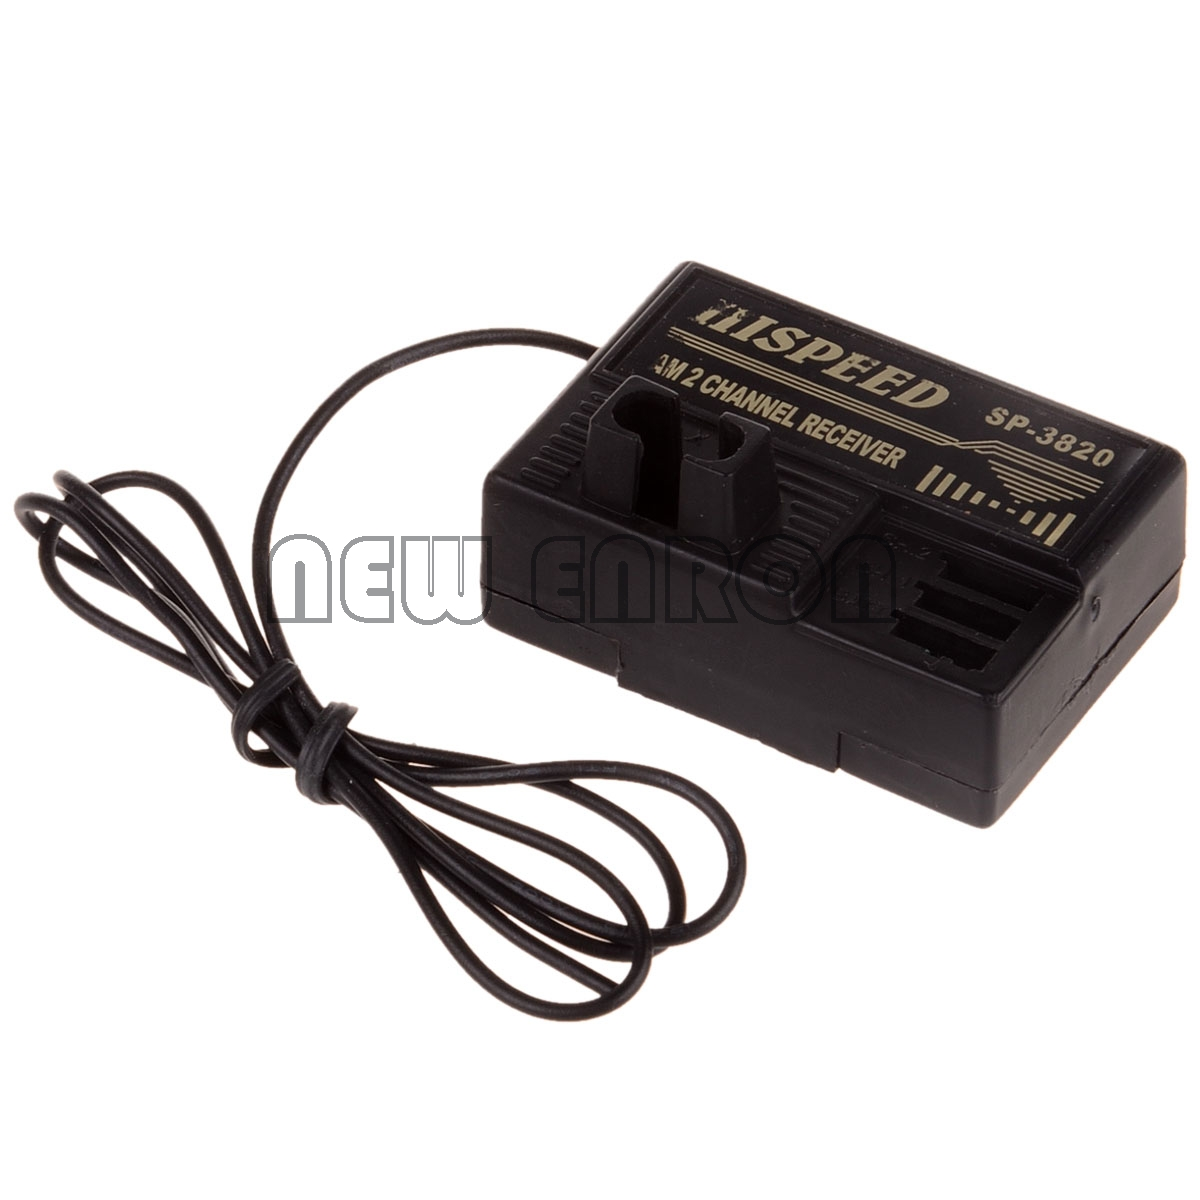 NEW ENRON 02071 AM 2 Channel HISPEED Receiver SP-3820 1/10 RC Car 94101 94105 94108 RC HSP